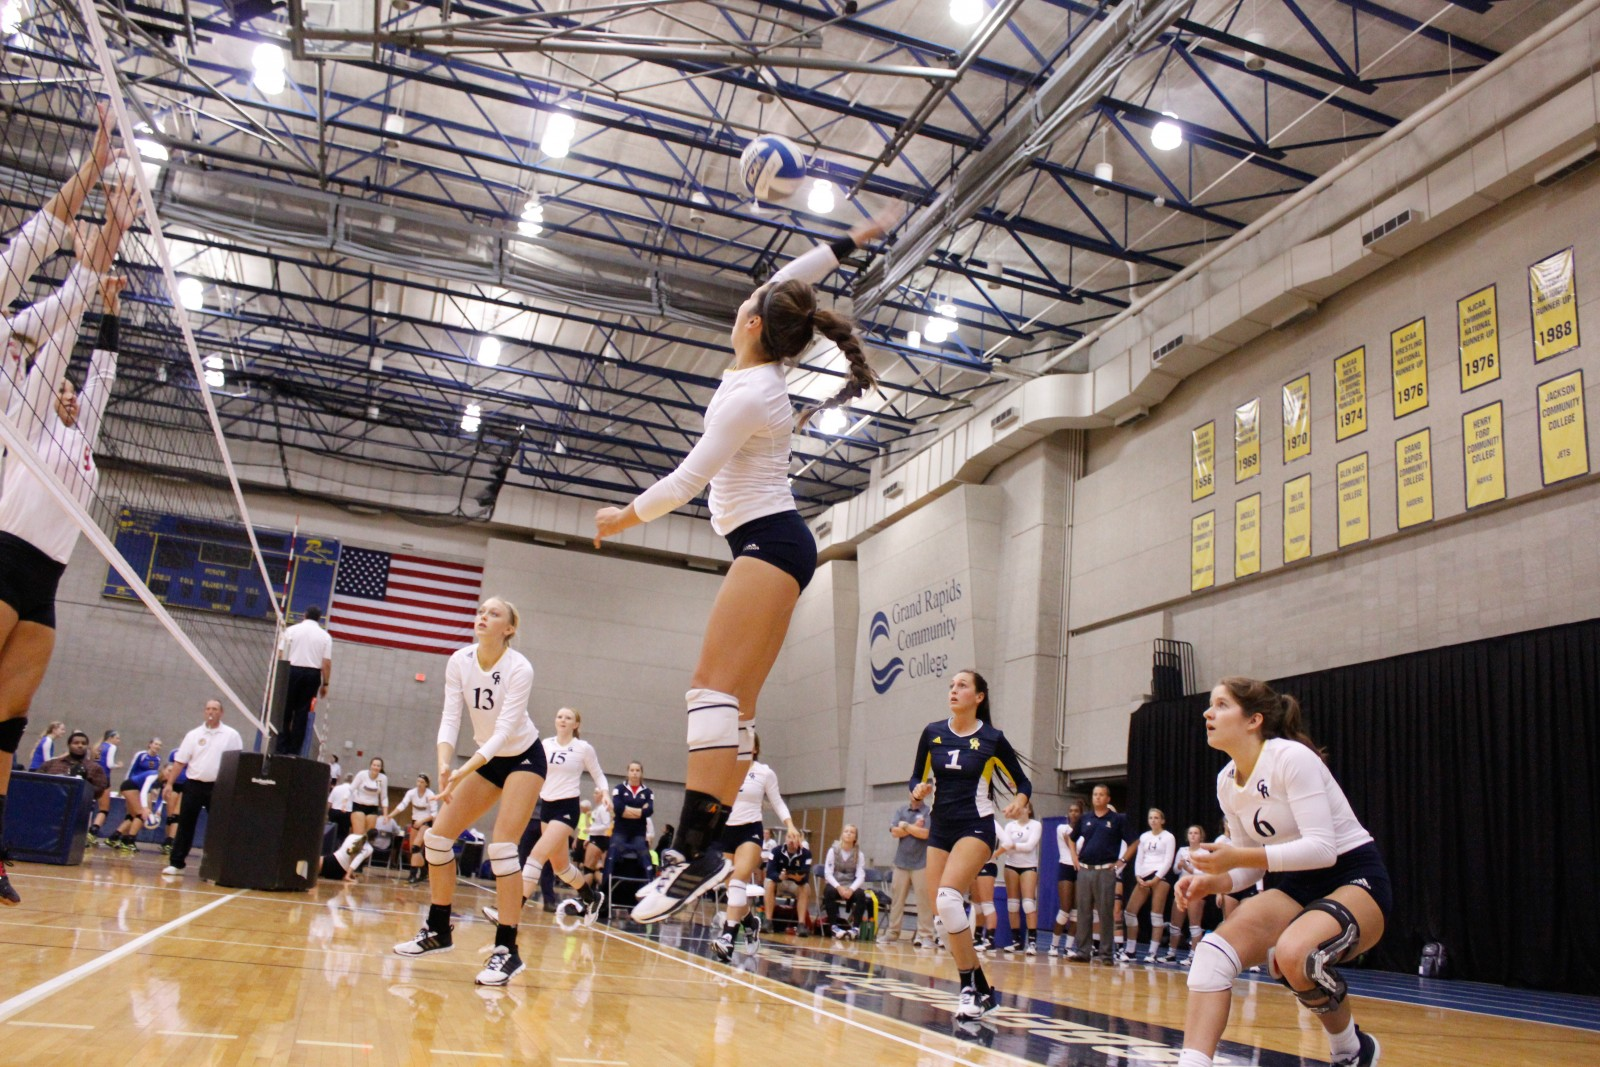 Sophomore Outside Hitter, #4, Lauren Wieber going up to spike the ball for a kill in GRCC's game versus Owens CC (OH) in the Raider Challenge tournament on Oct. 2.